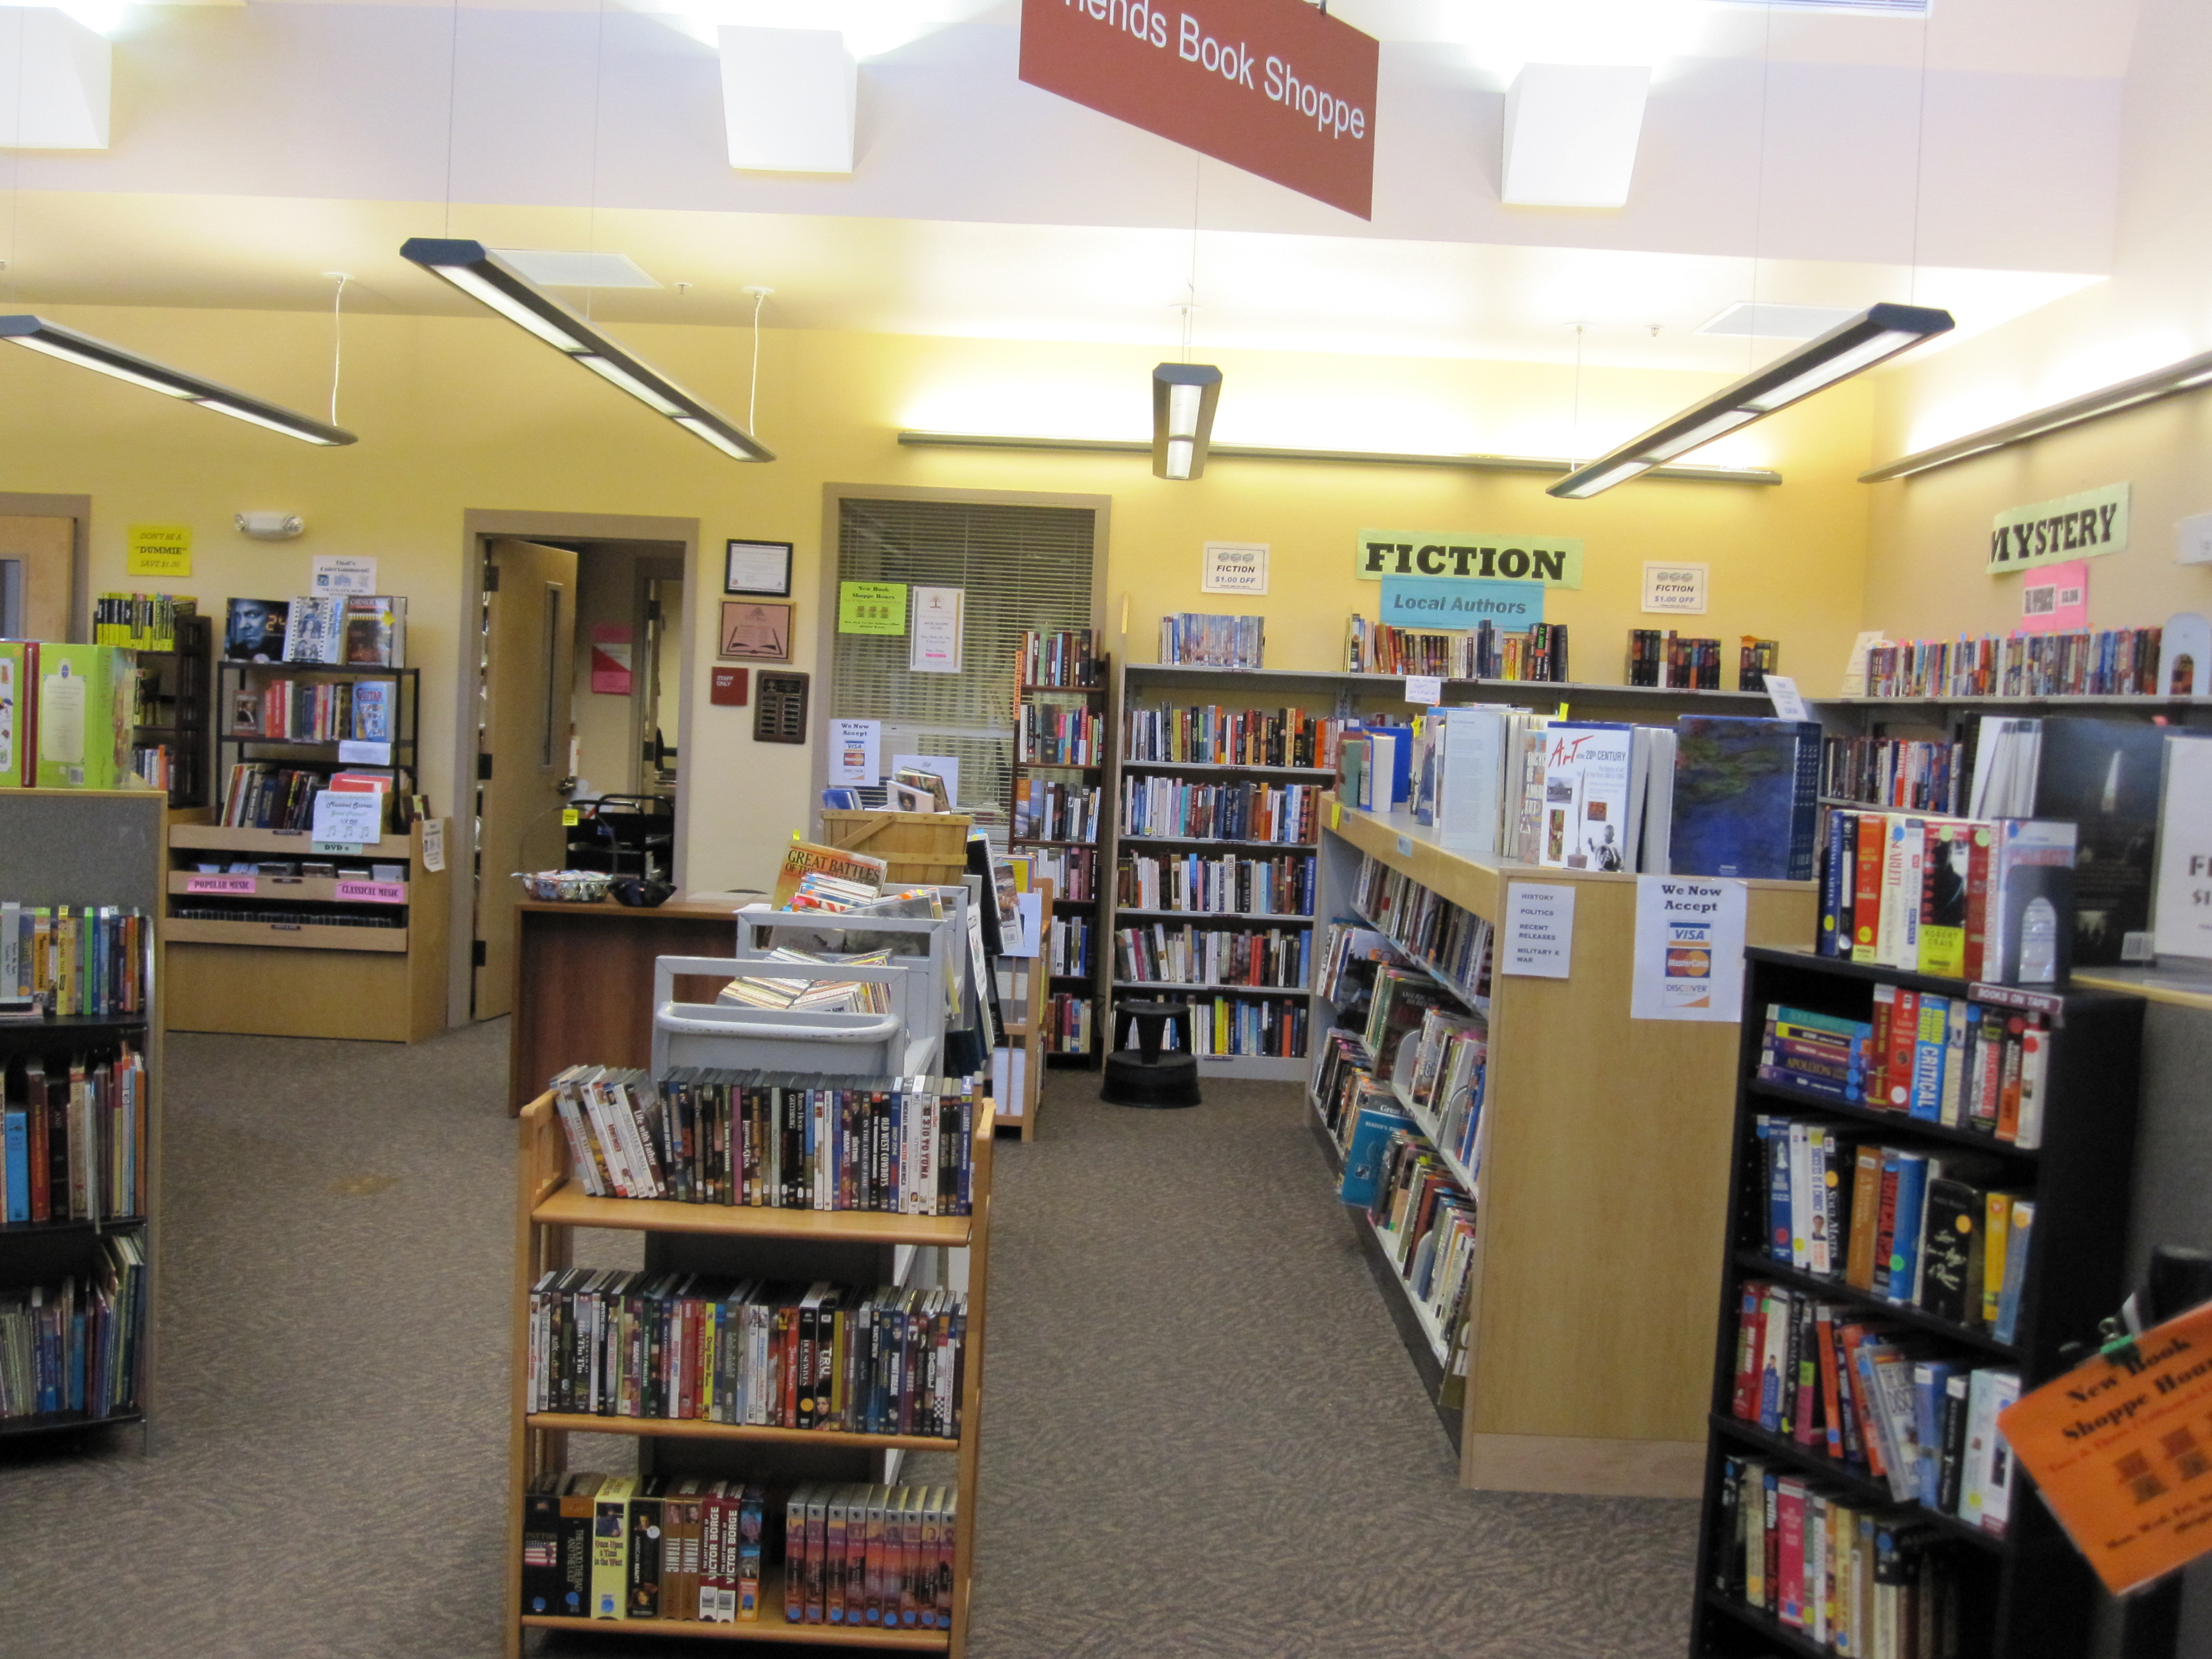 The Friends Book Shoppe has more than 8,000 books from which to choose.